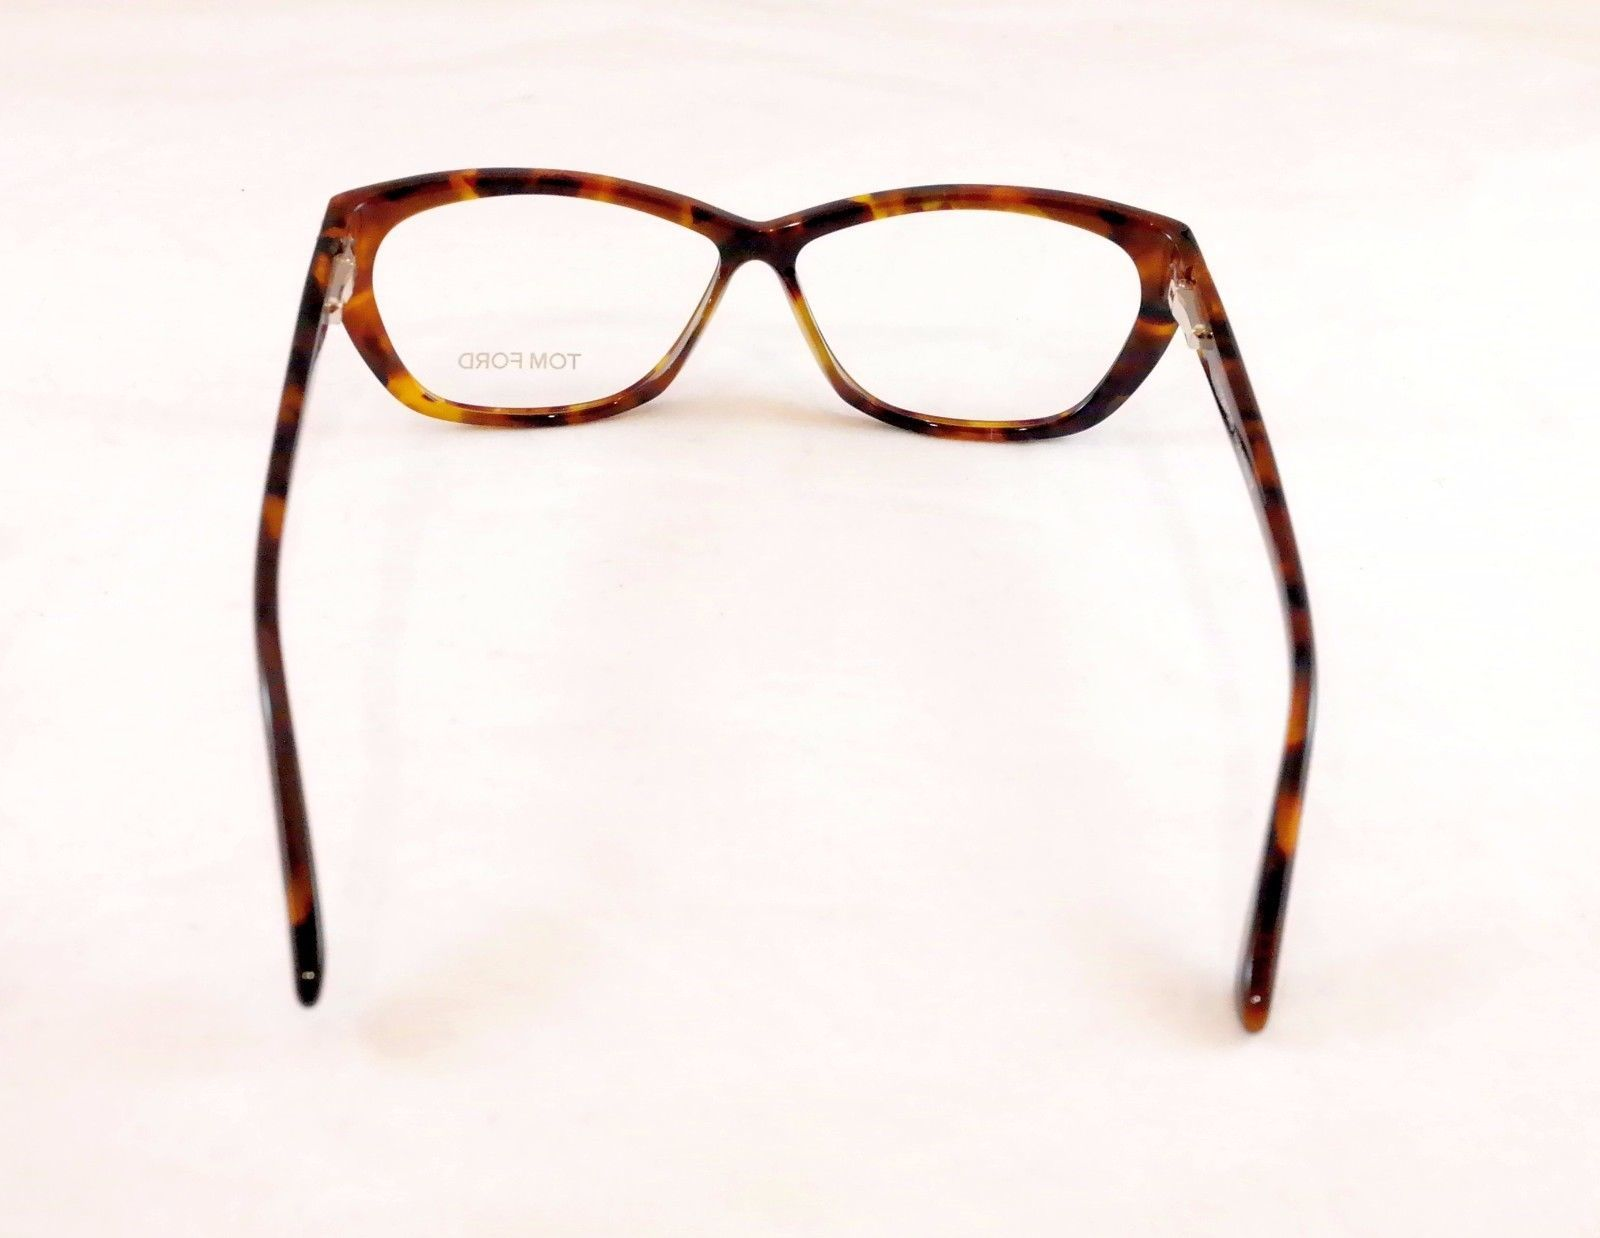 Authentic New Tom Ford Eyeglasses Frame TF5227 052 Brown Plastic Italy Made